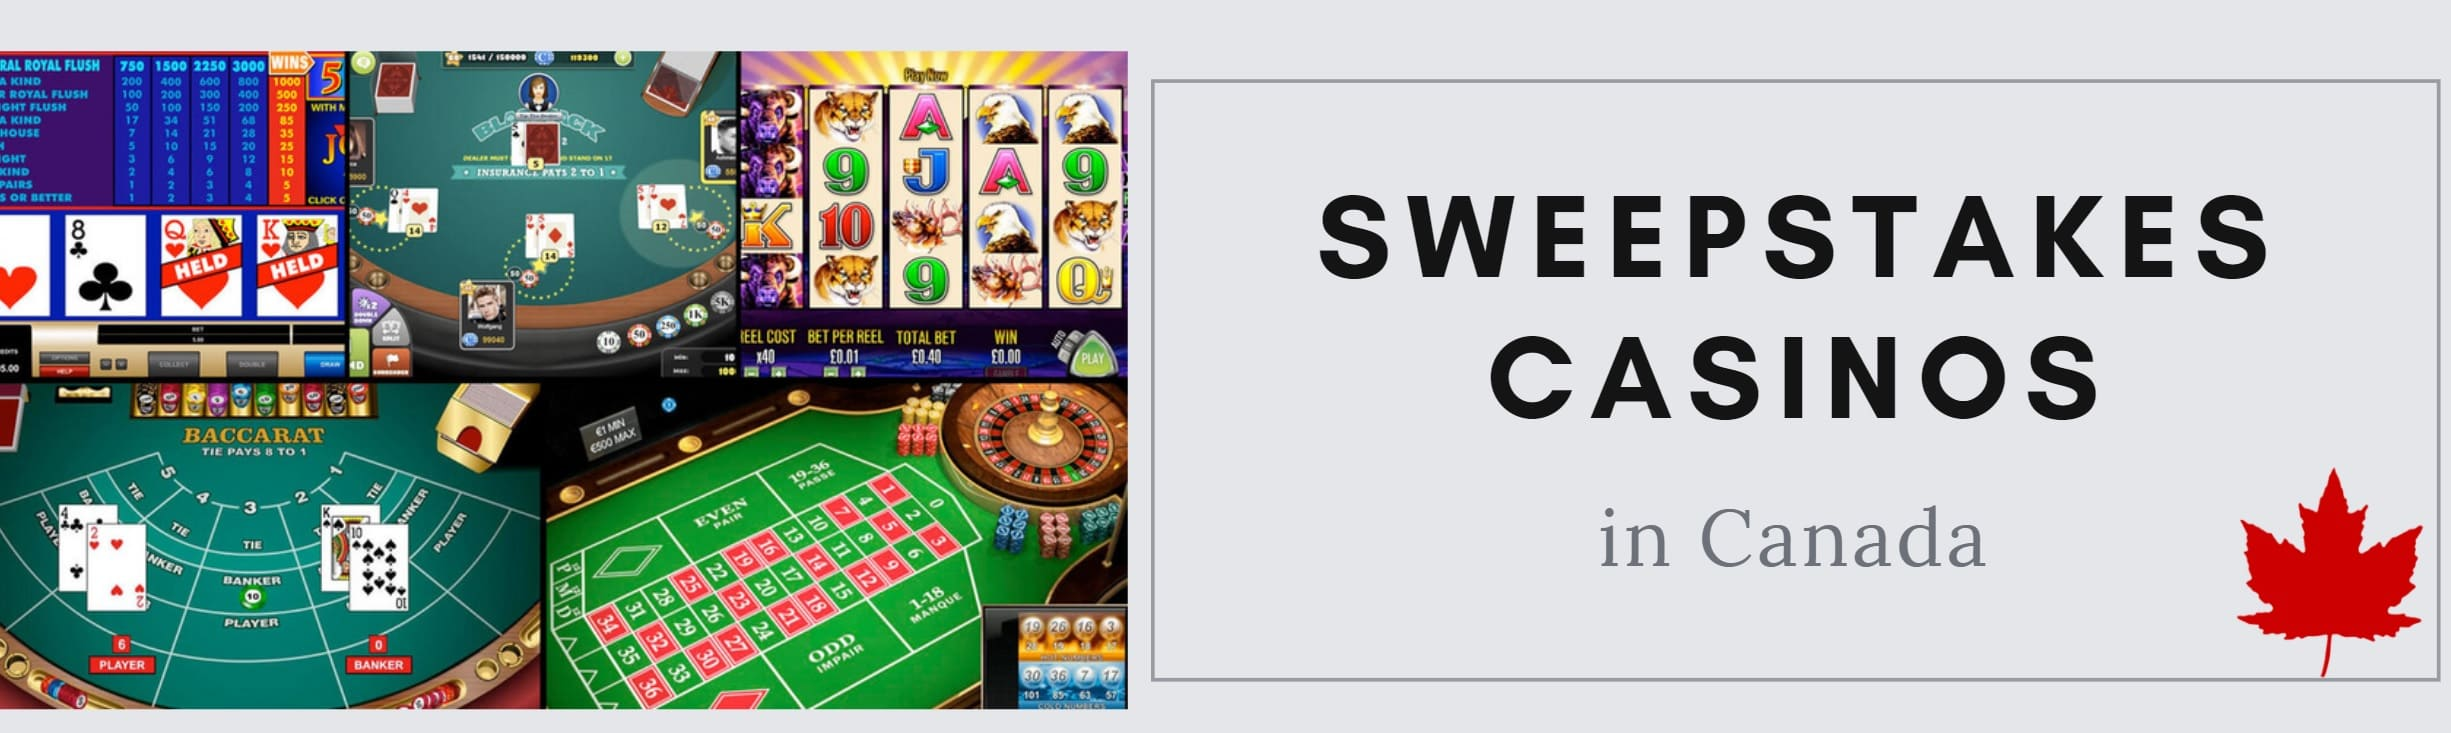 sweepstakes casinos Canada